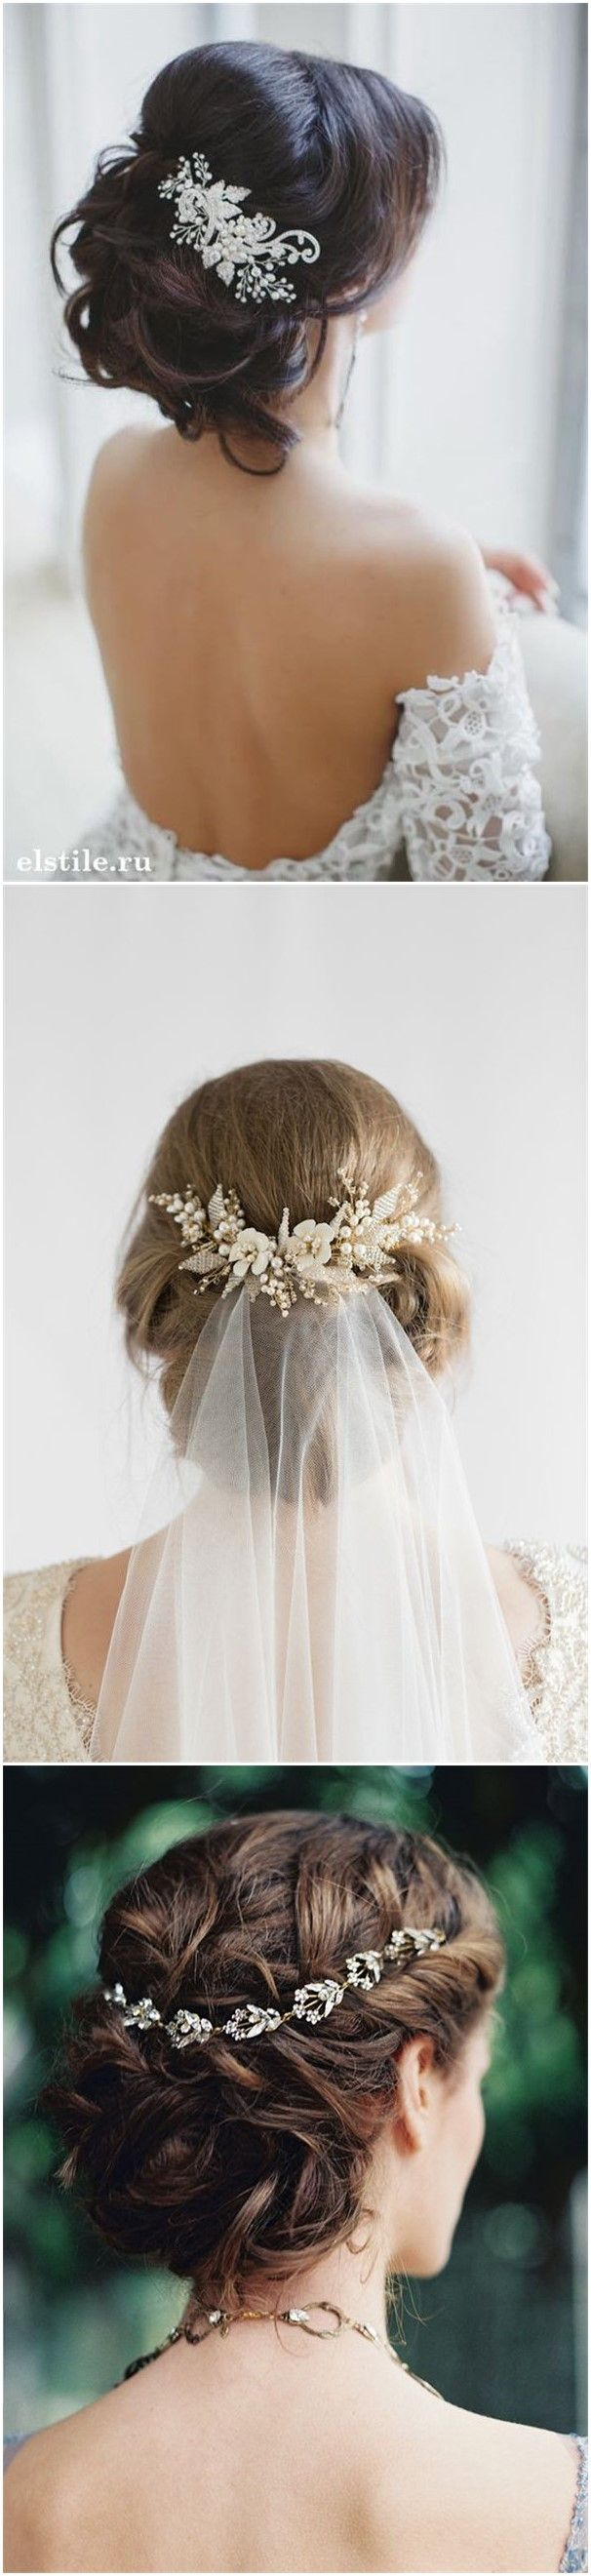 Butterfly hair accessories for weddings uk - Hair Comes The Bride 20 Bridal Hair Accessories Get Style Advice For Any Budget